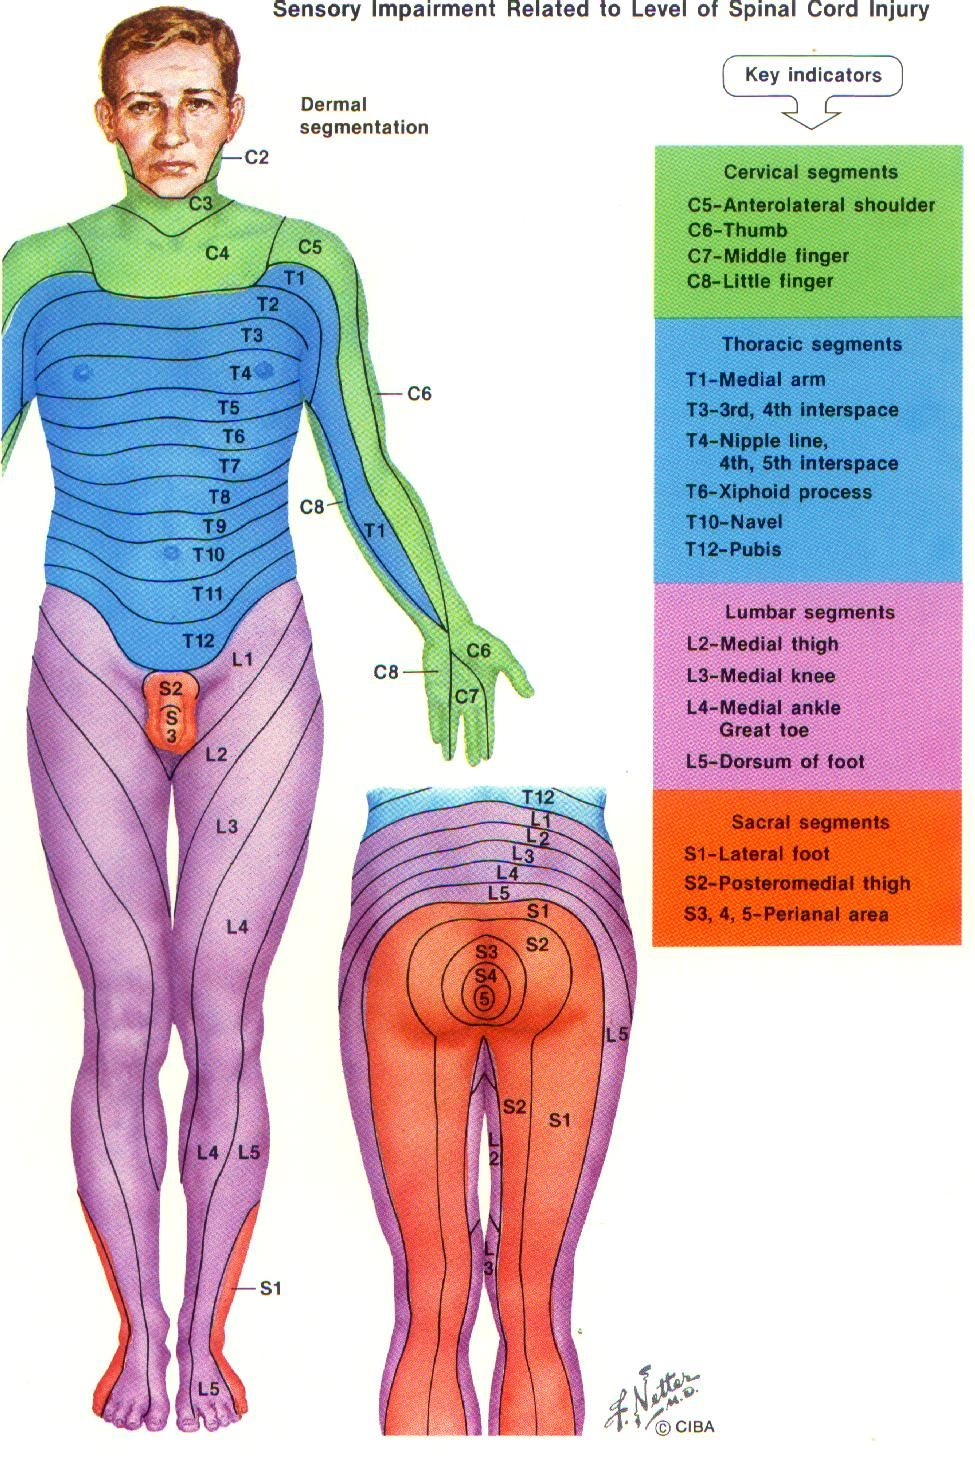 medium resolution of dermatome chart with symptoms more pain first thing in the morning or after sitting a long time is